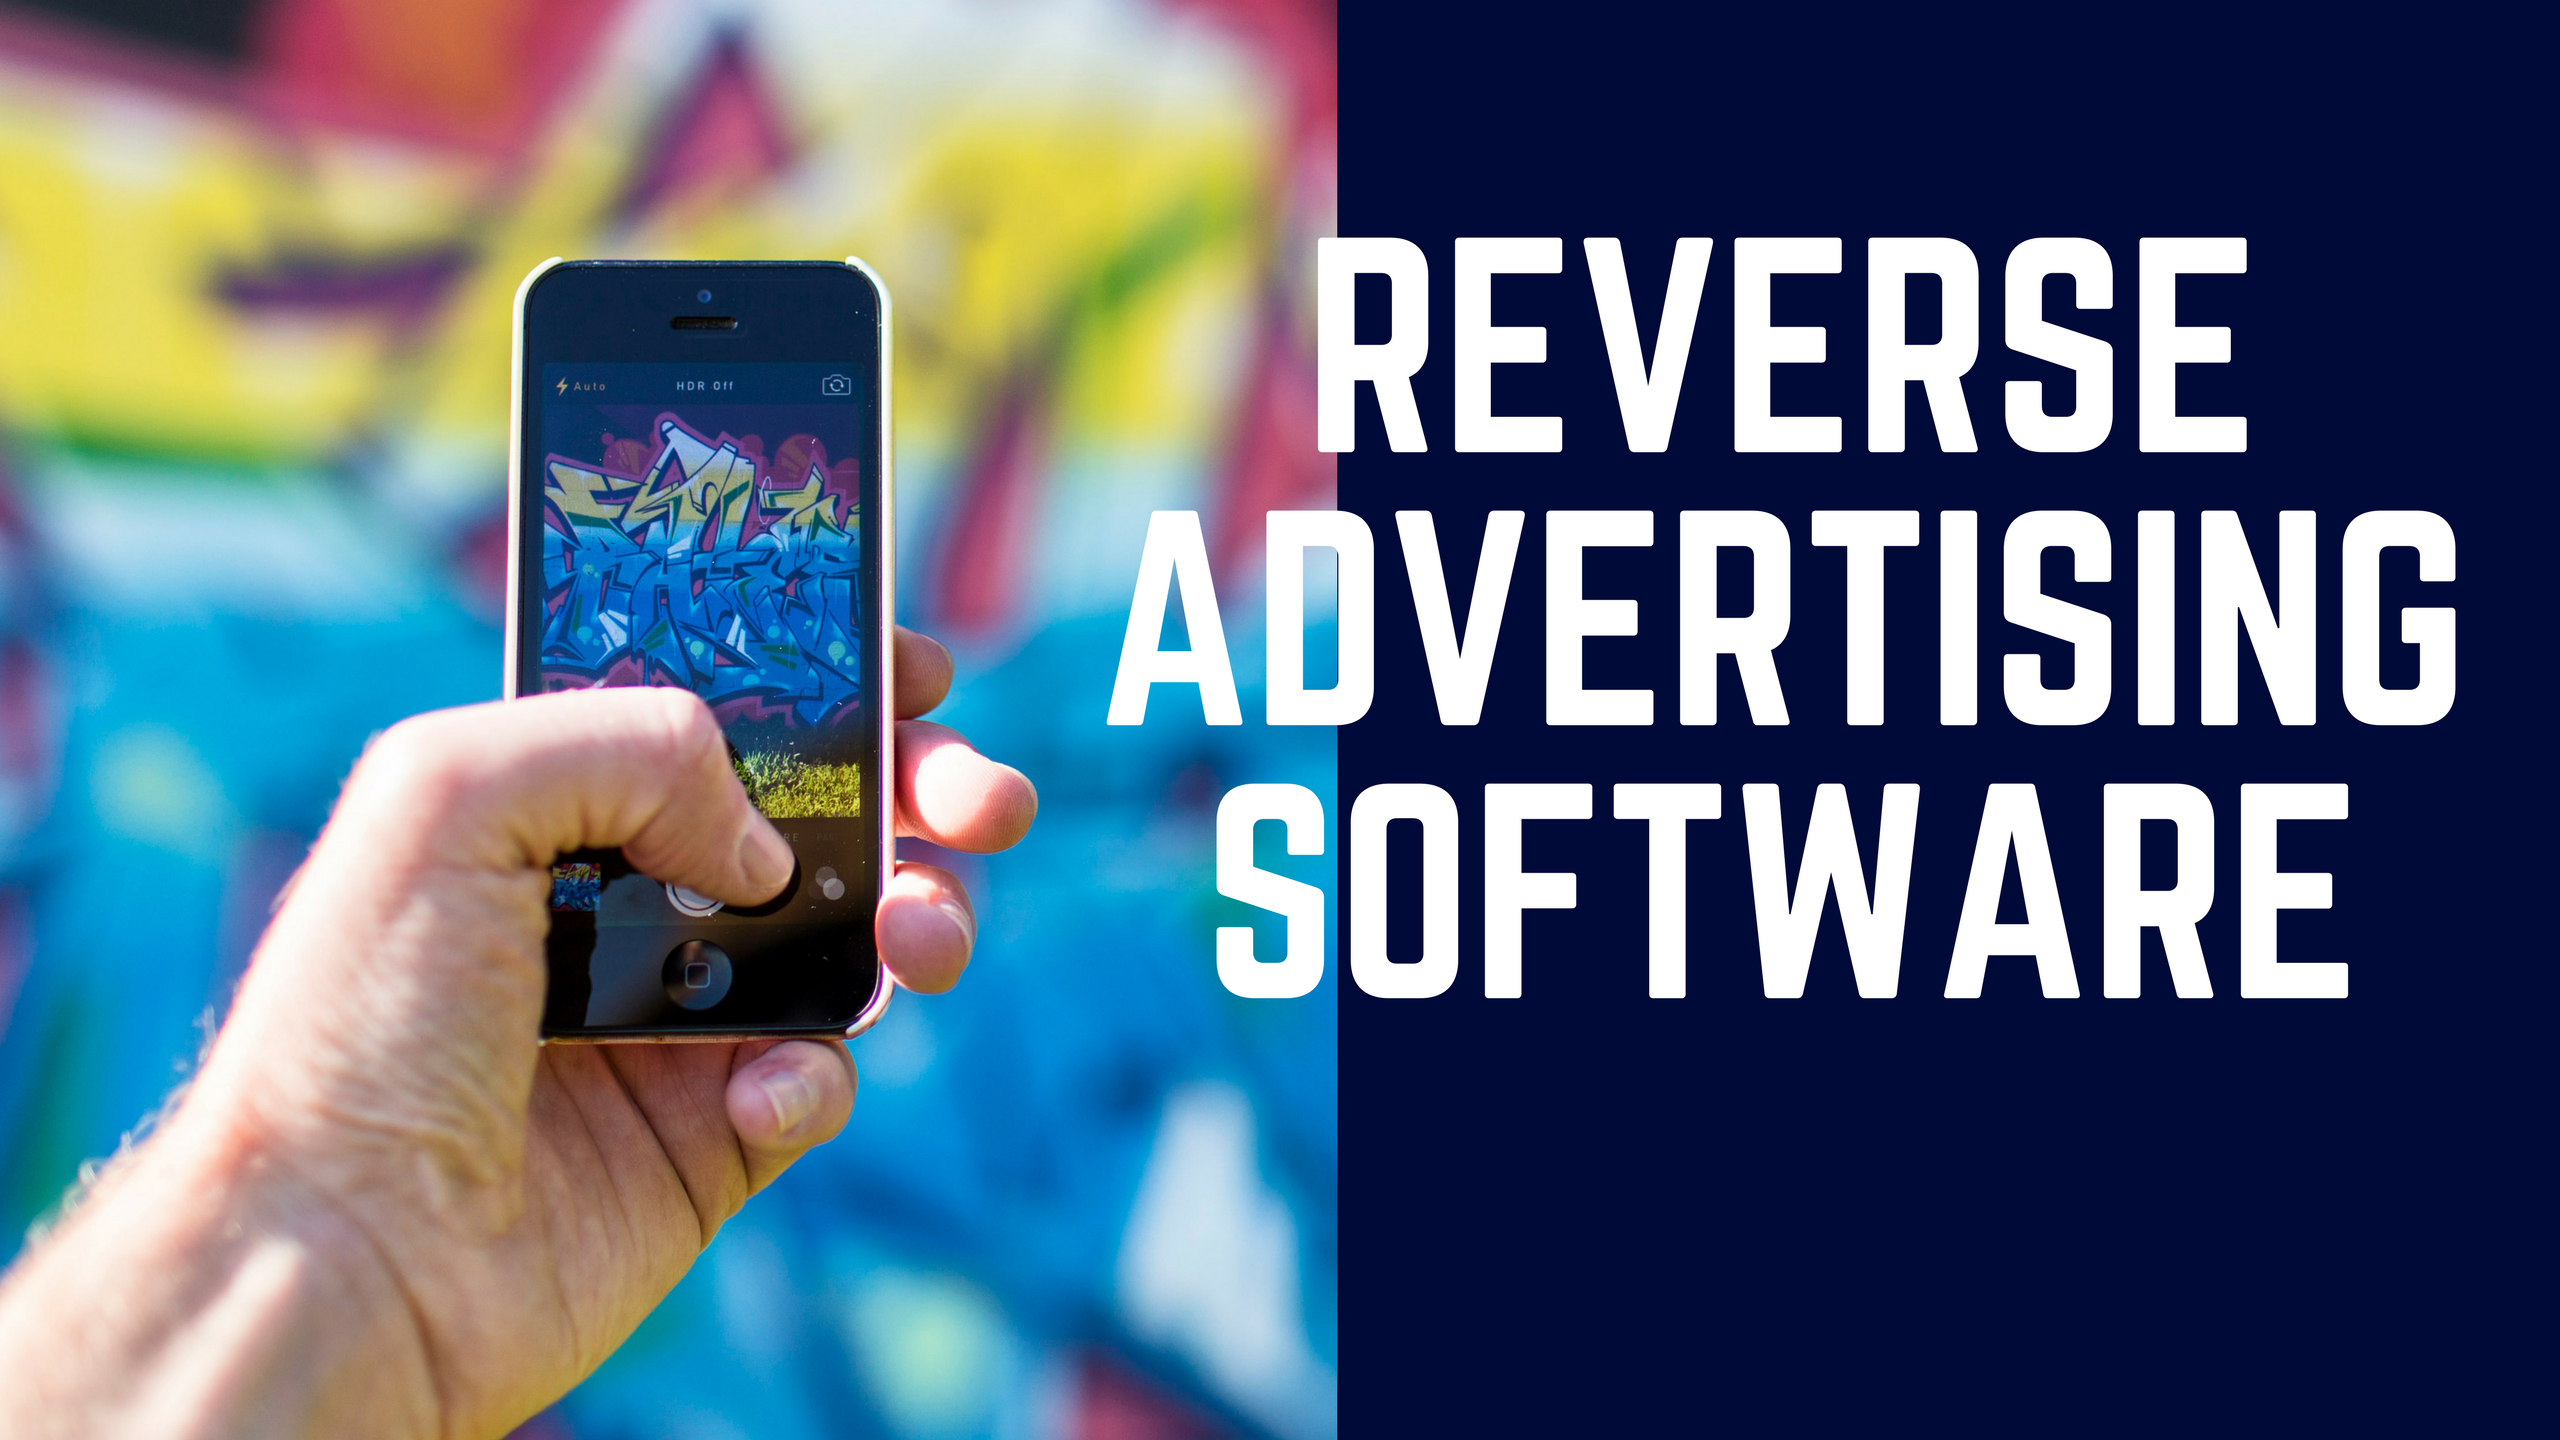 Global Ad Reply Reverse Advertising Software